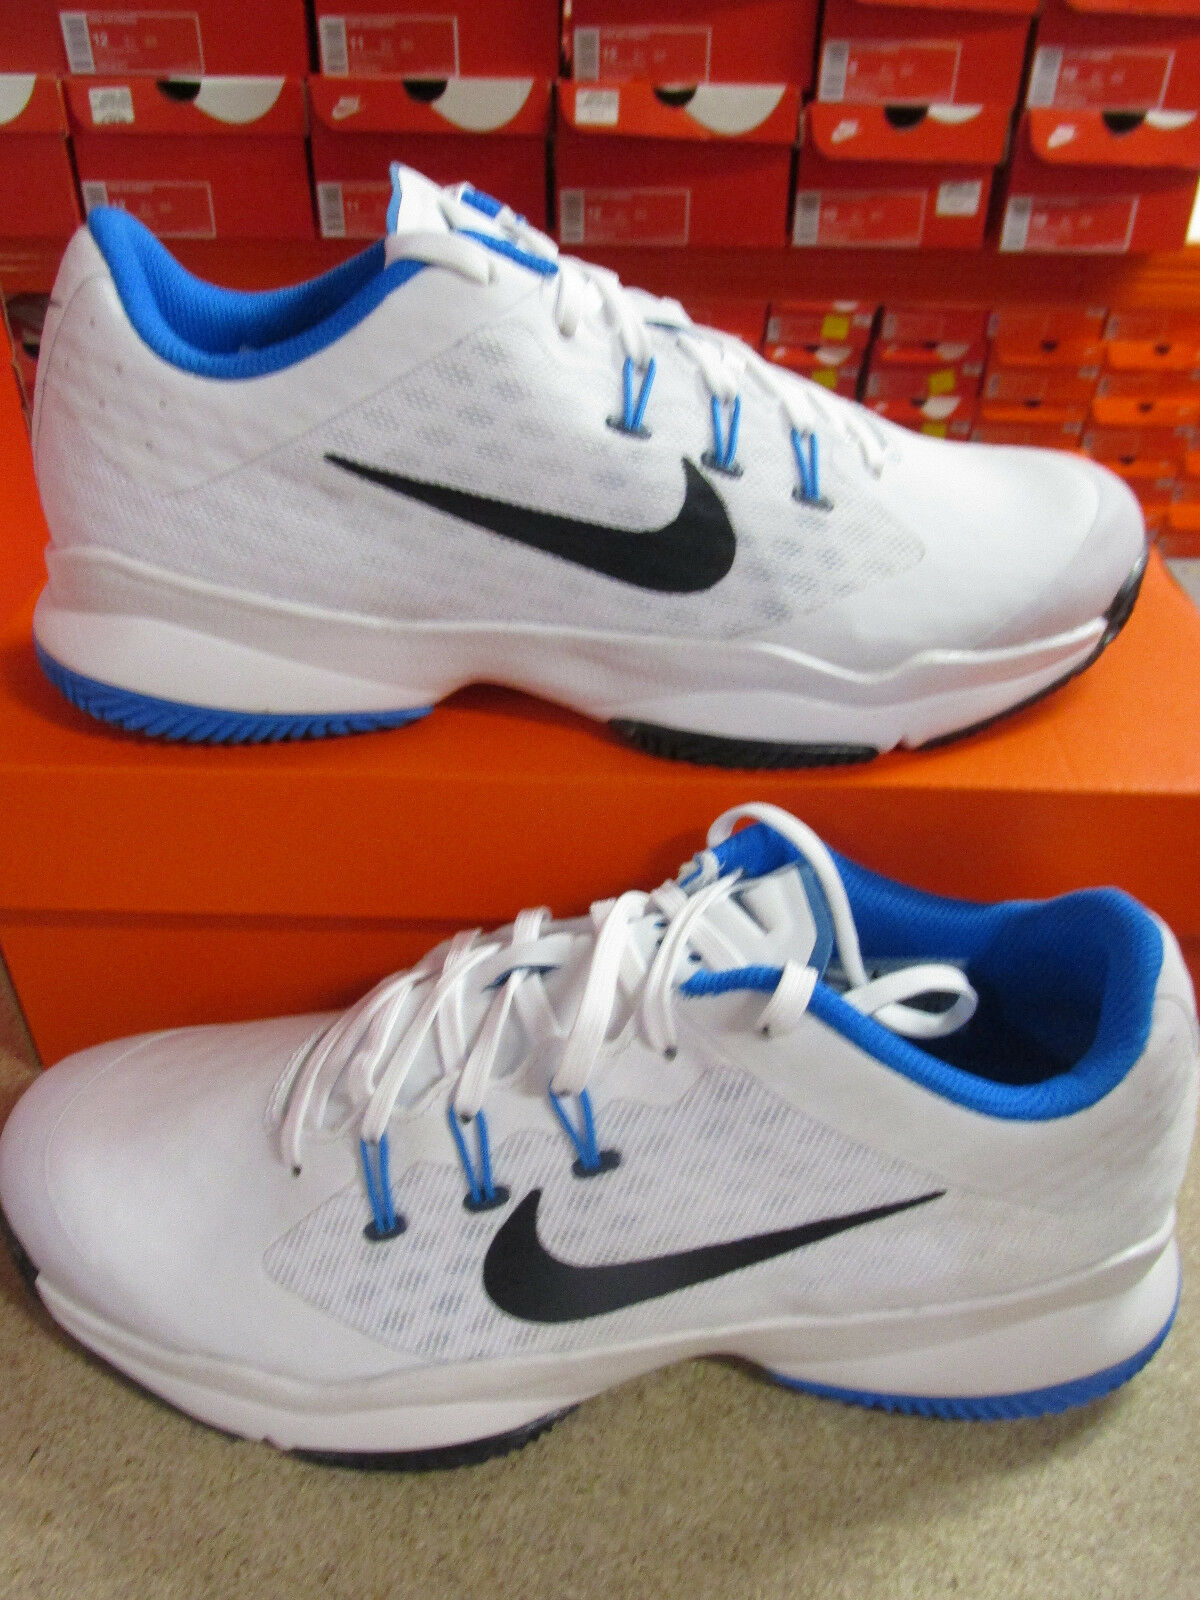 super popular 2d8f1 adcc4 nike air zoom ultra clay de formateurs 845008 140 140 140 tennis tennis  1e9674